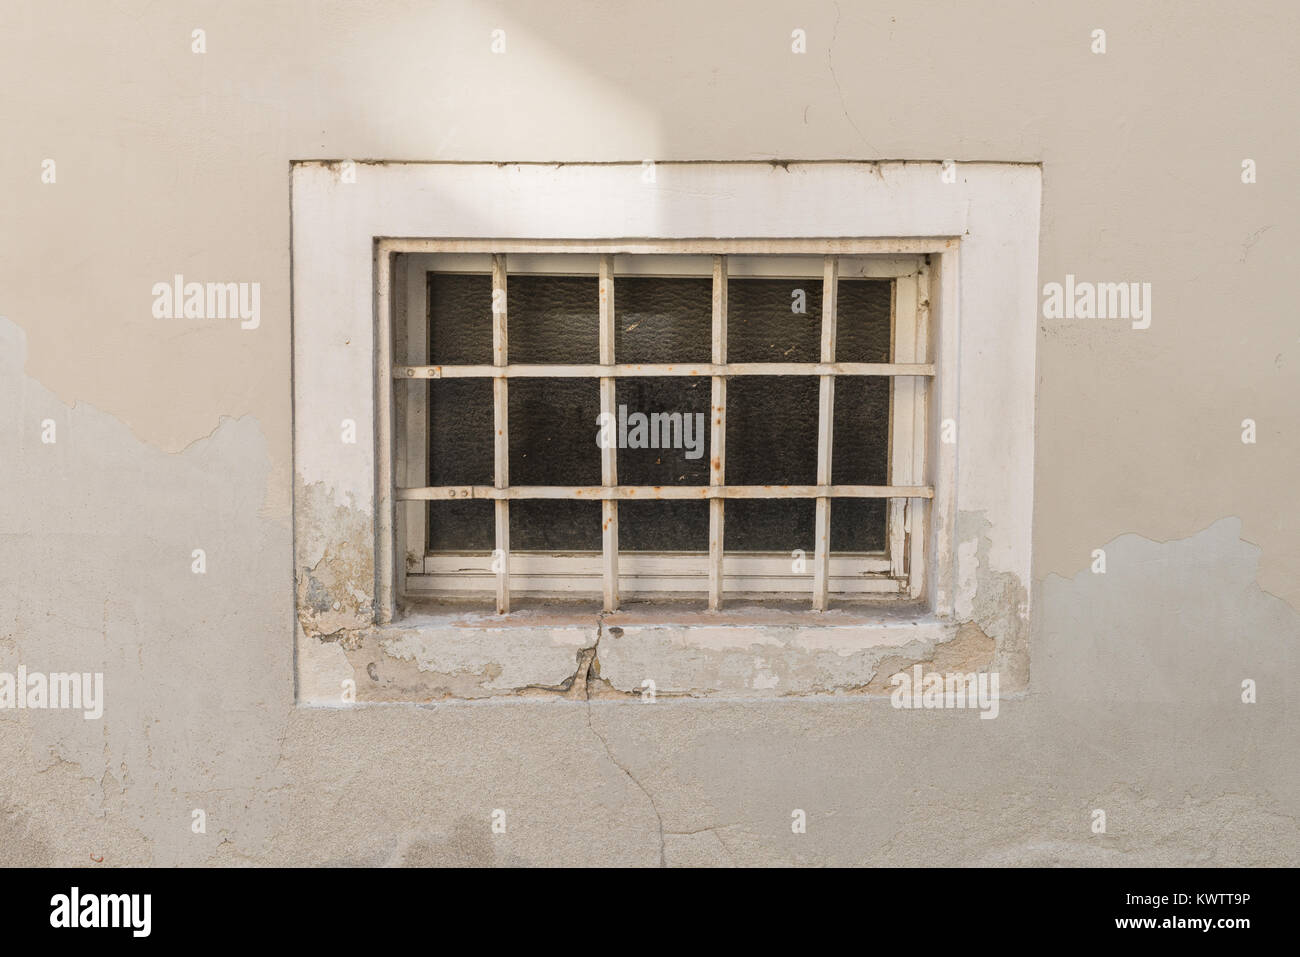 Old rusty Cellar window with iron grating - Stock Image & Cellar Window Stock Photos u0026 Cellar Window Stock Images - Alamy